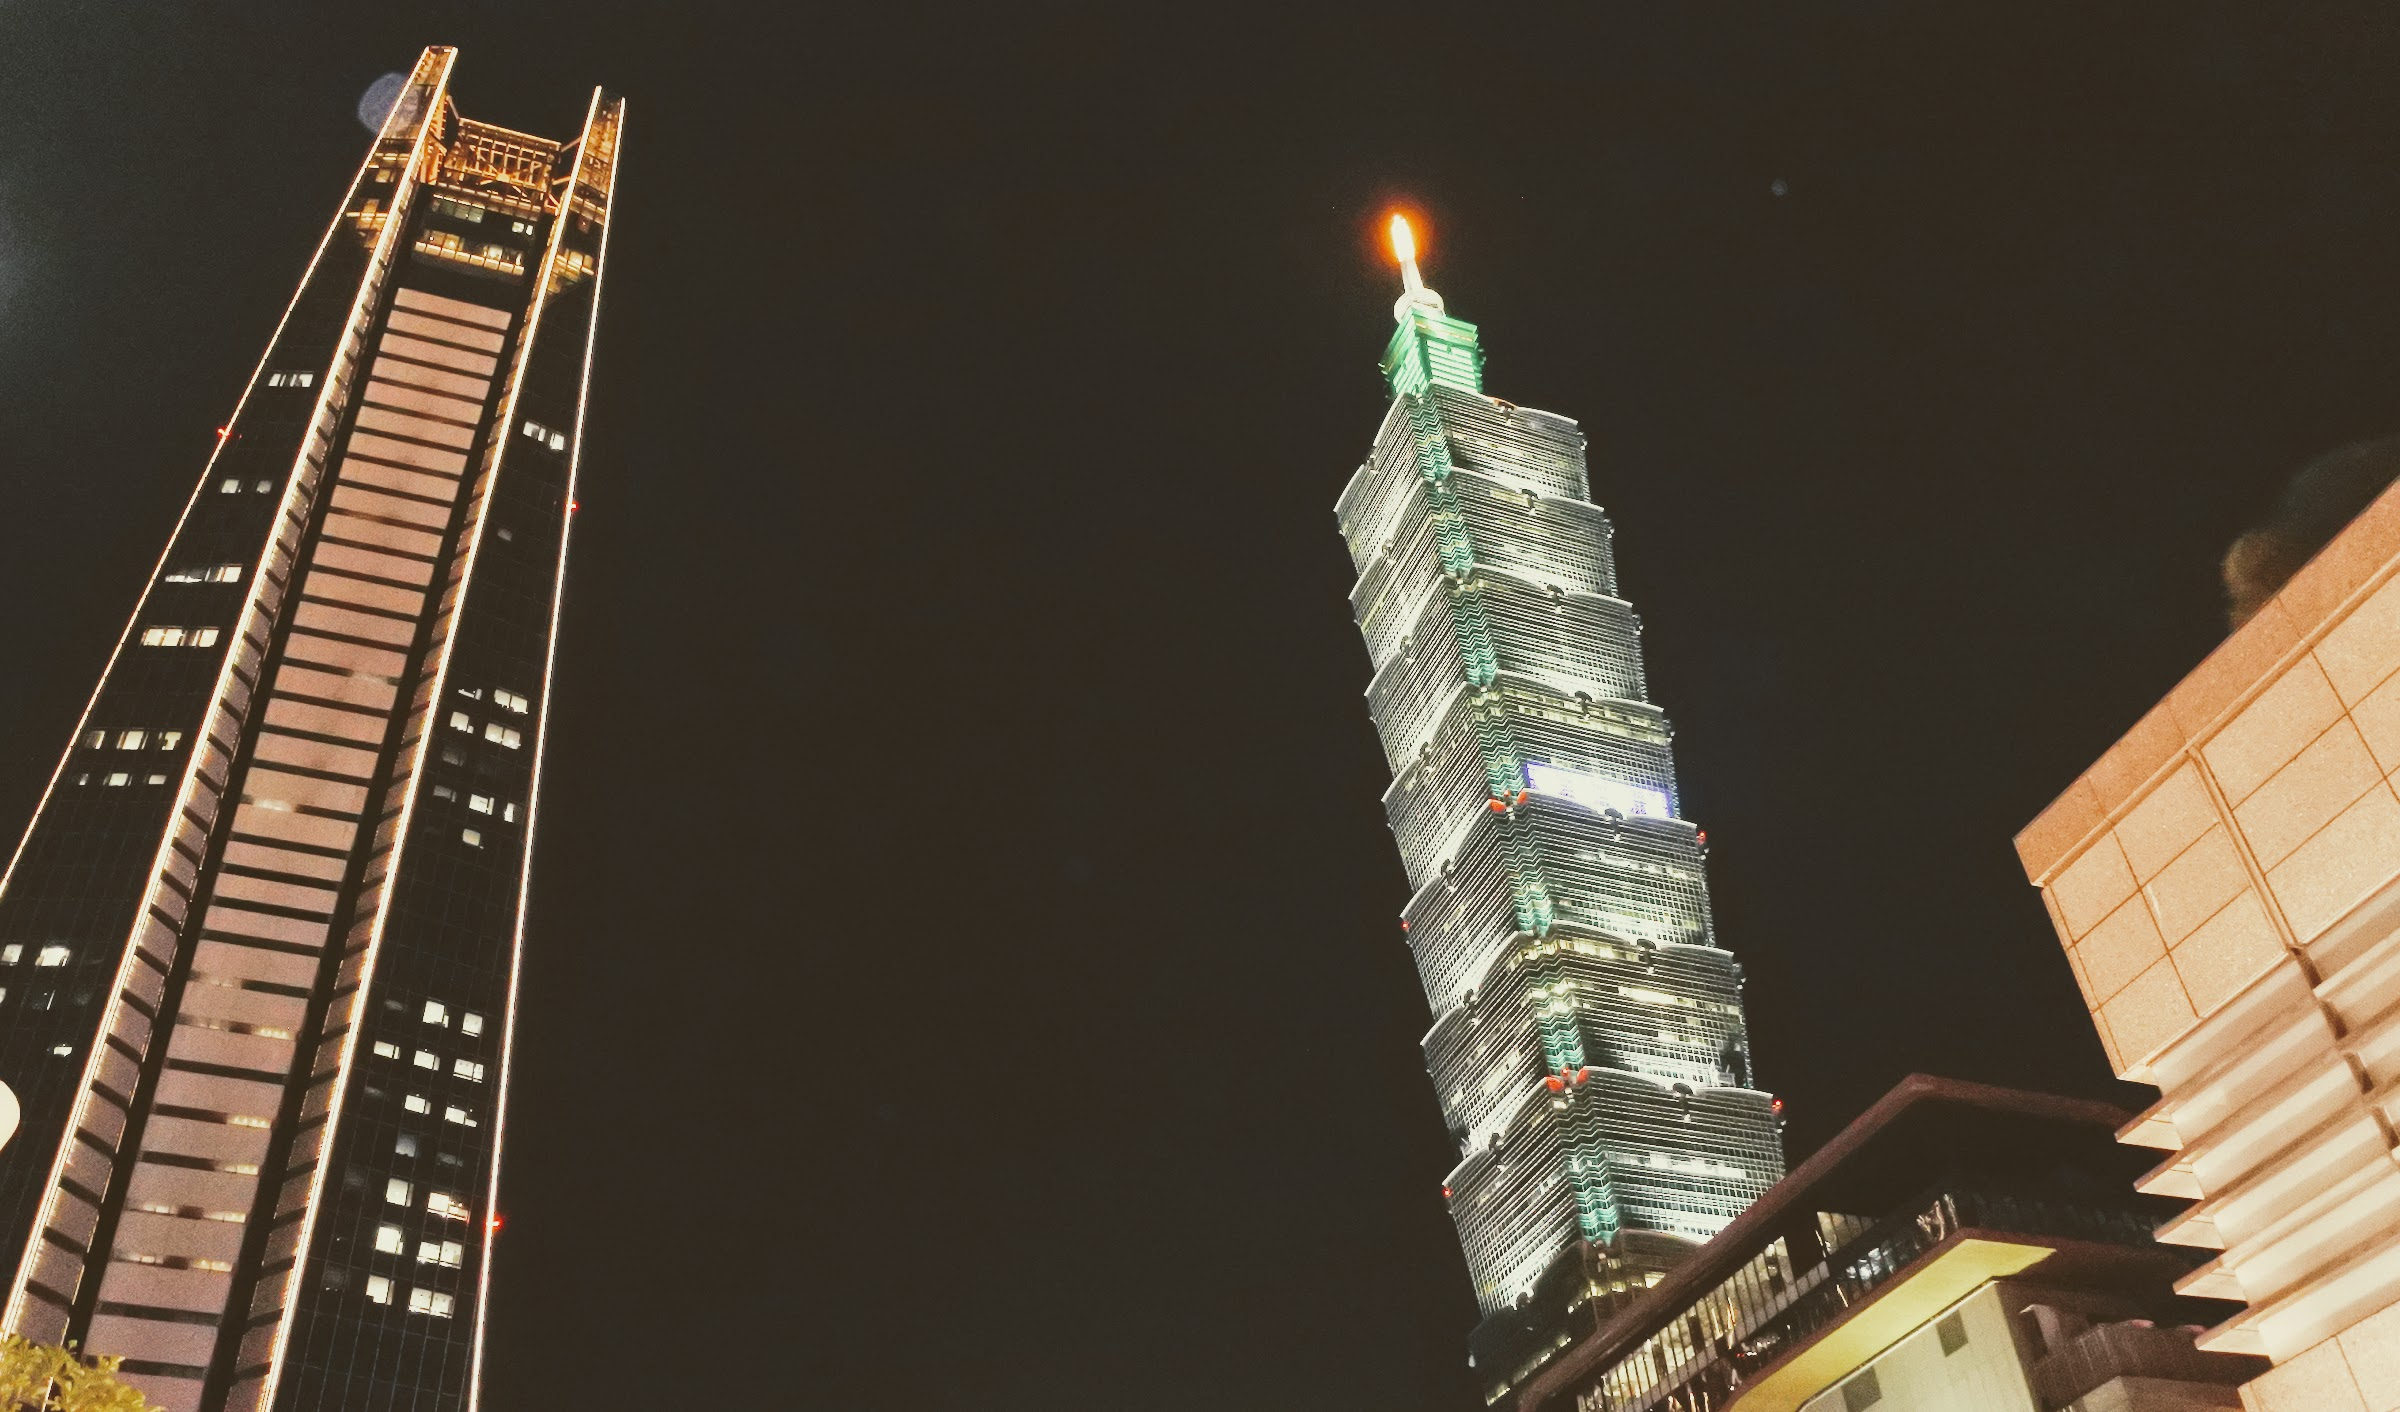 A must for a 3 nights in Taiwan trip - Taipei 101